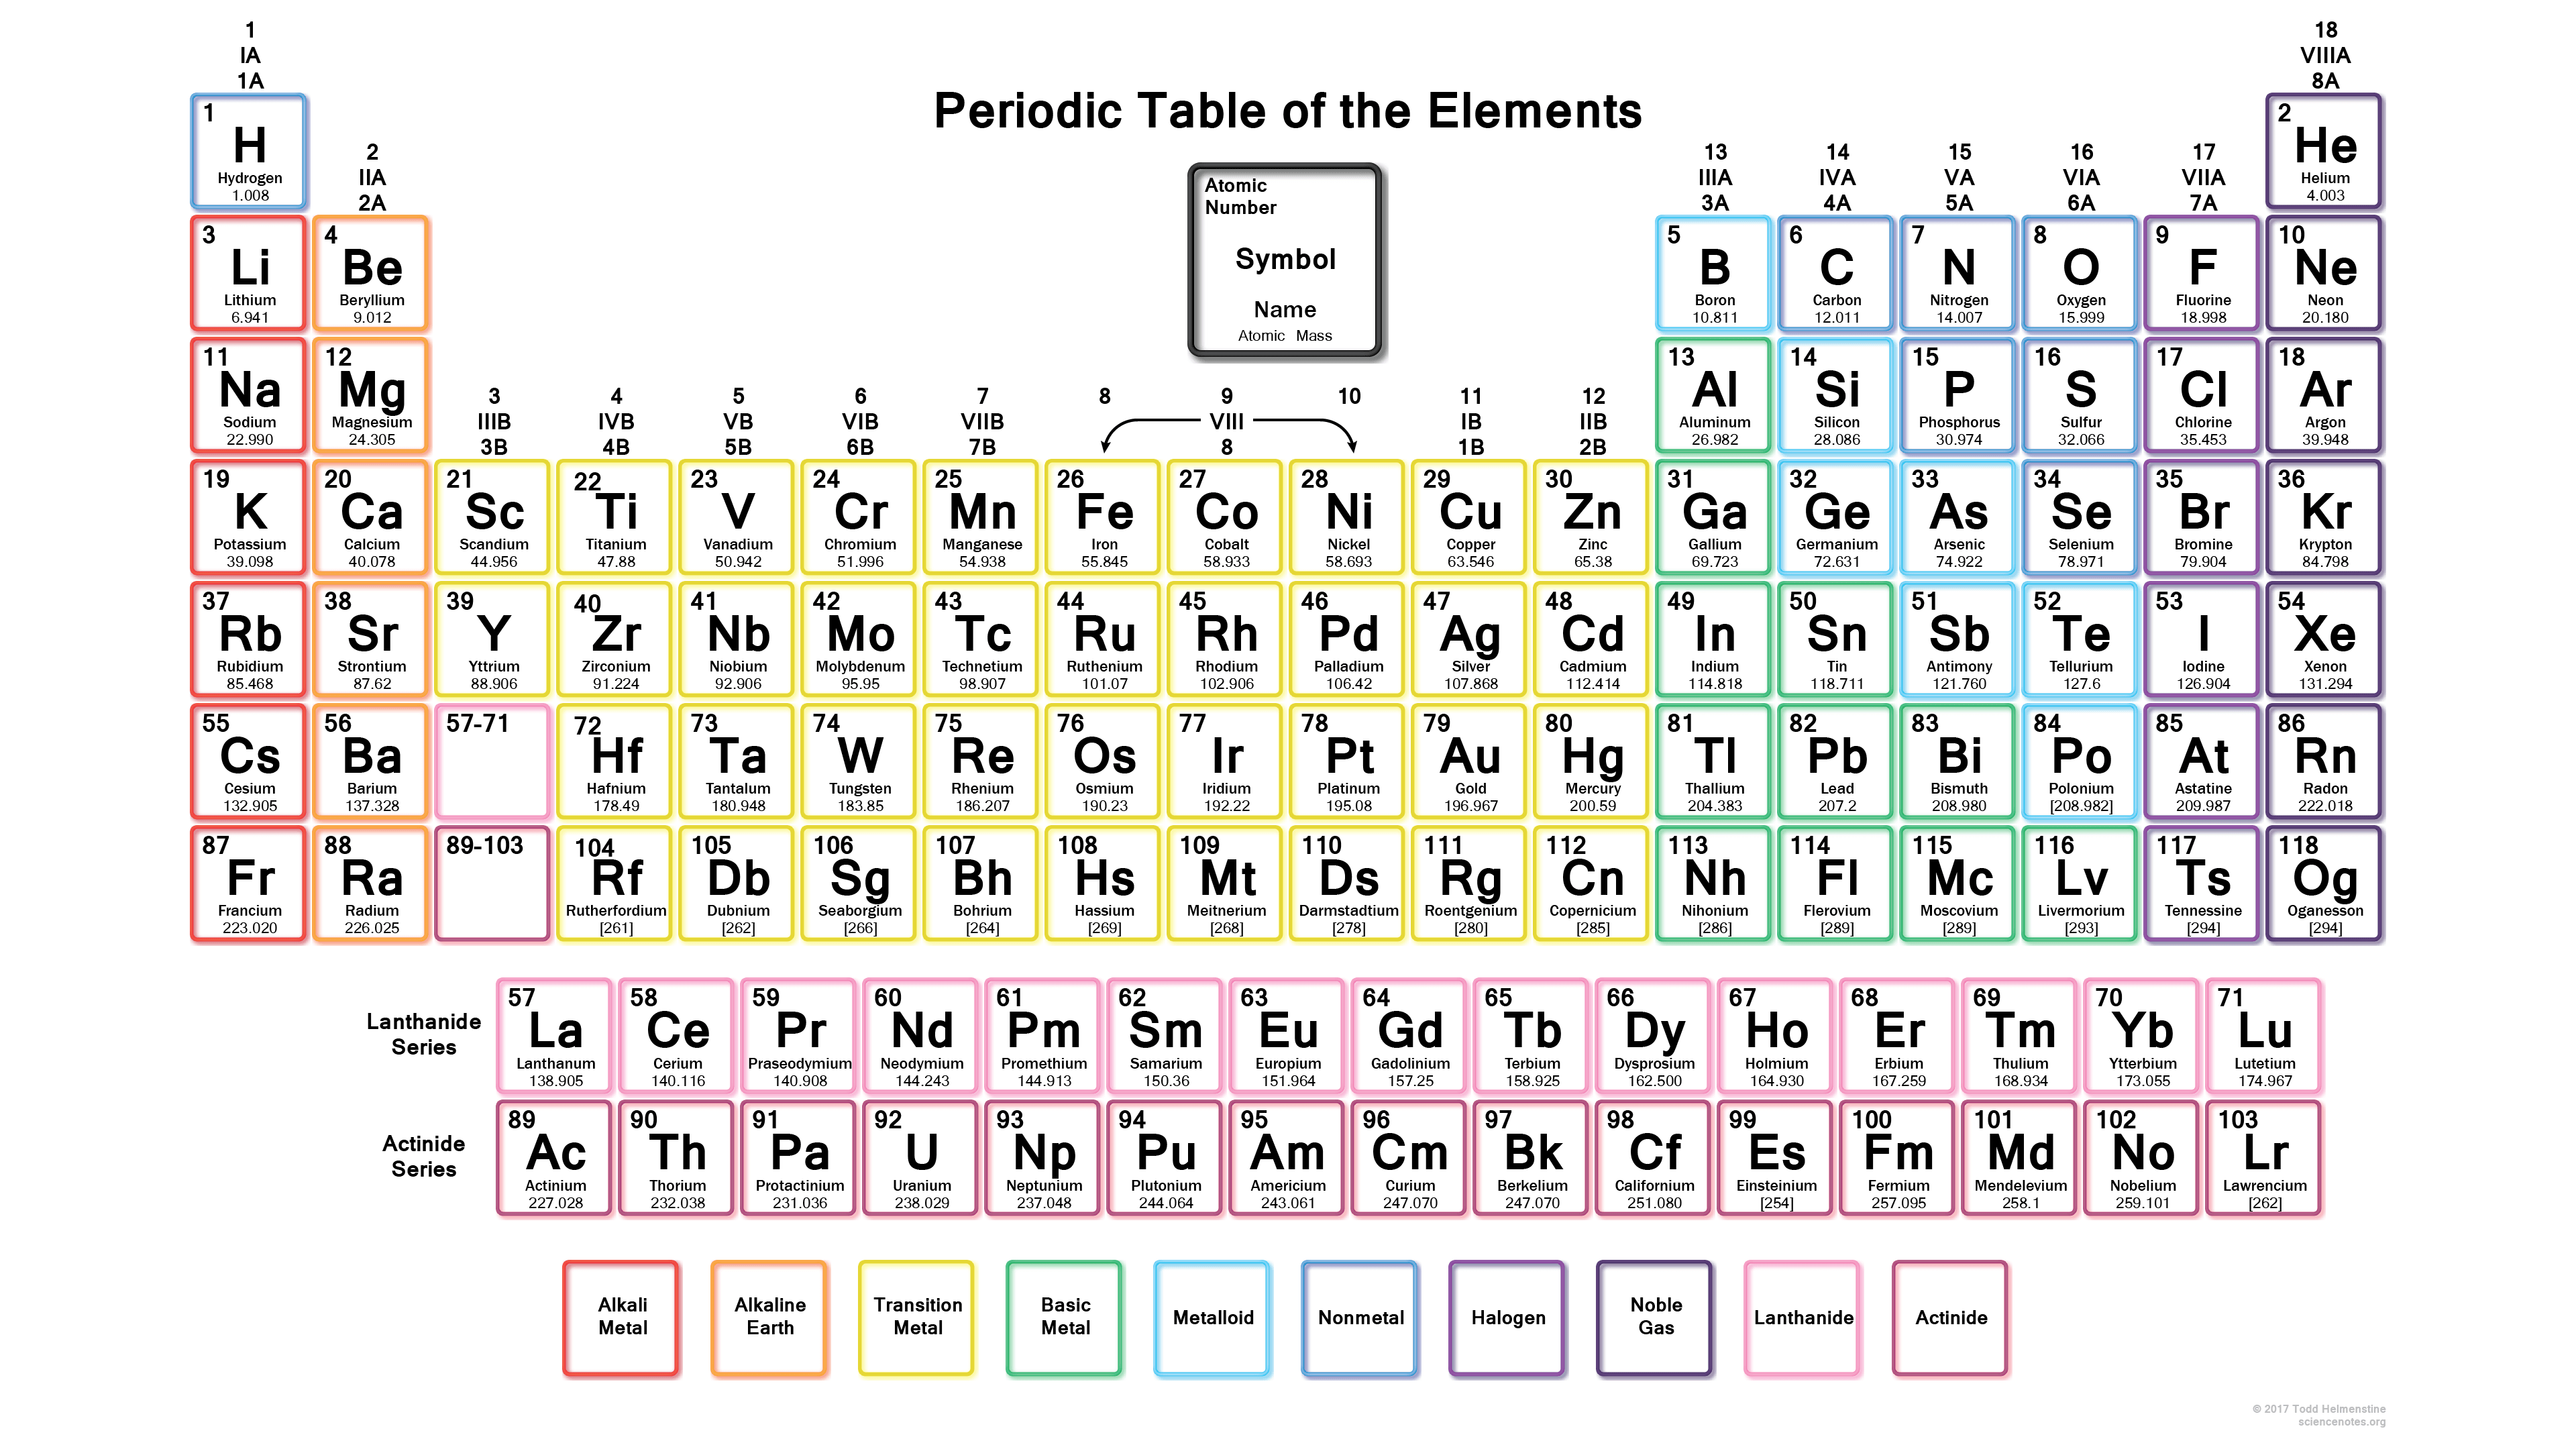 Neon Periodic Table - 2017 Edition (118 Elements)